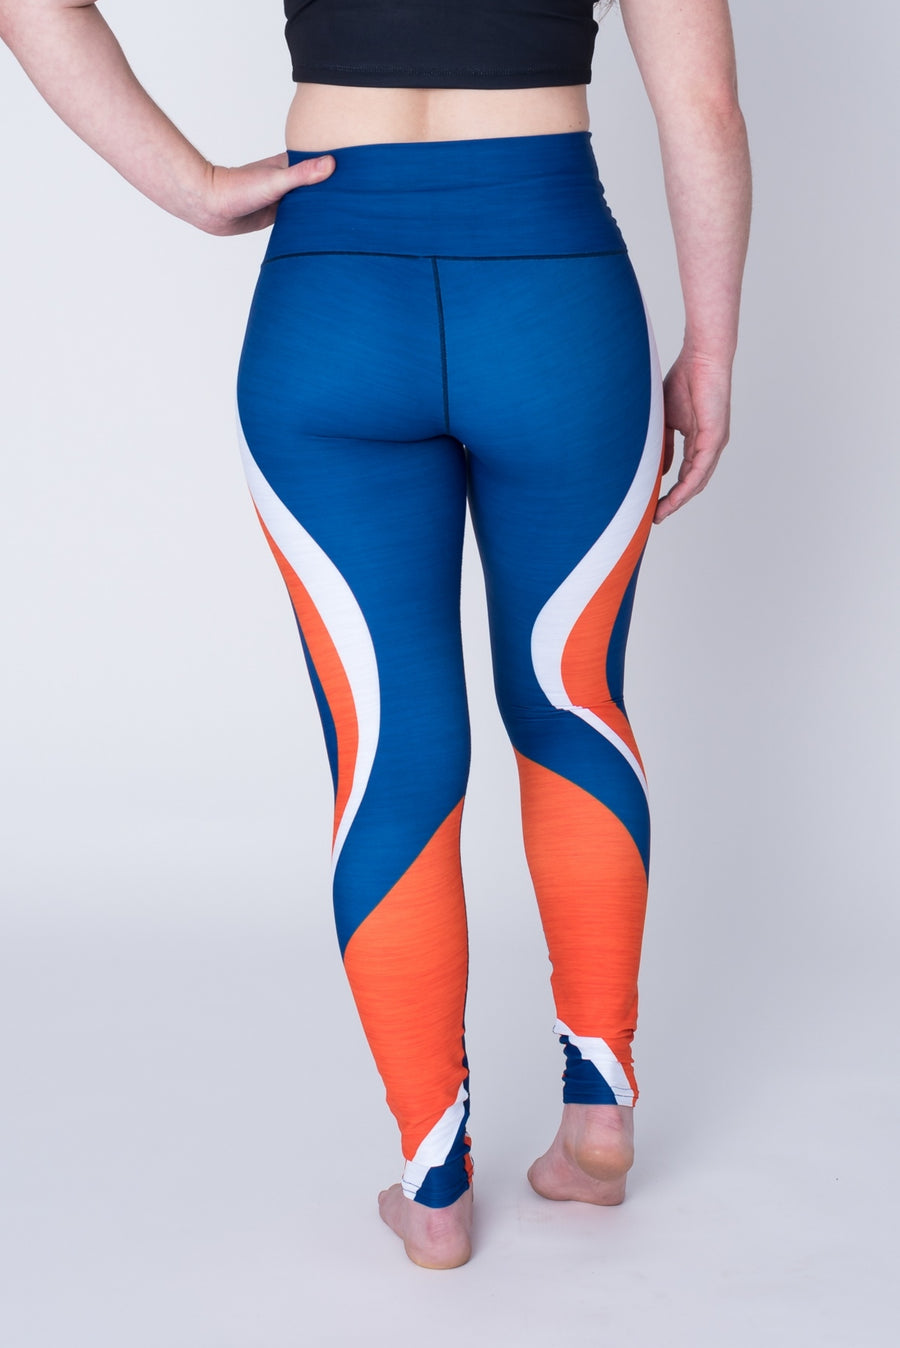 Blue & Orange Yoga Pants *FINAL SALE*